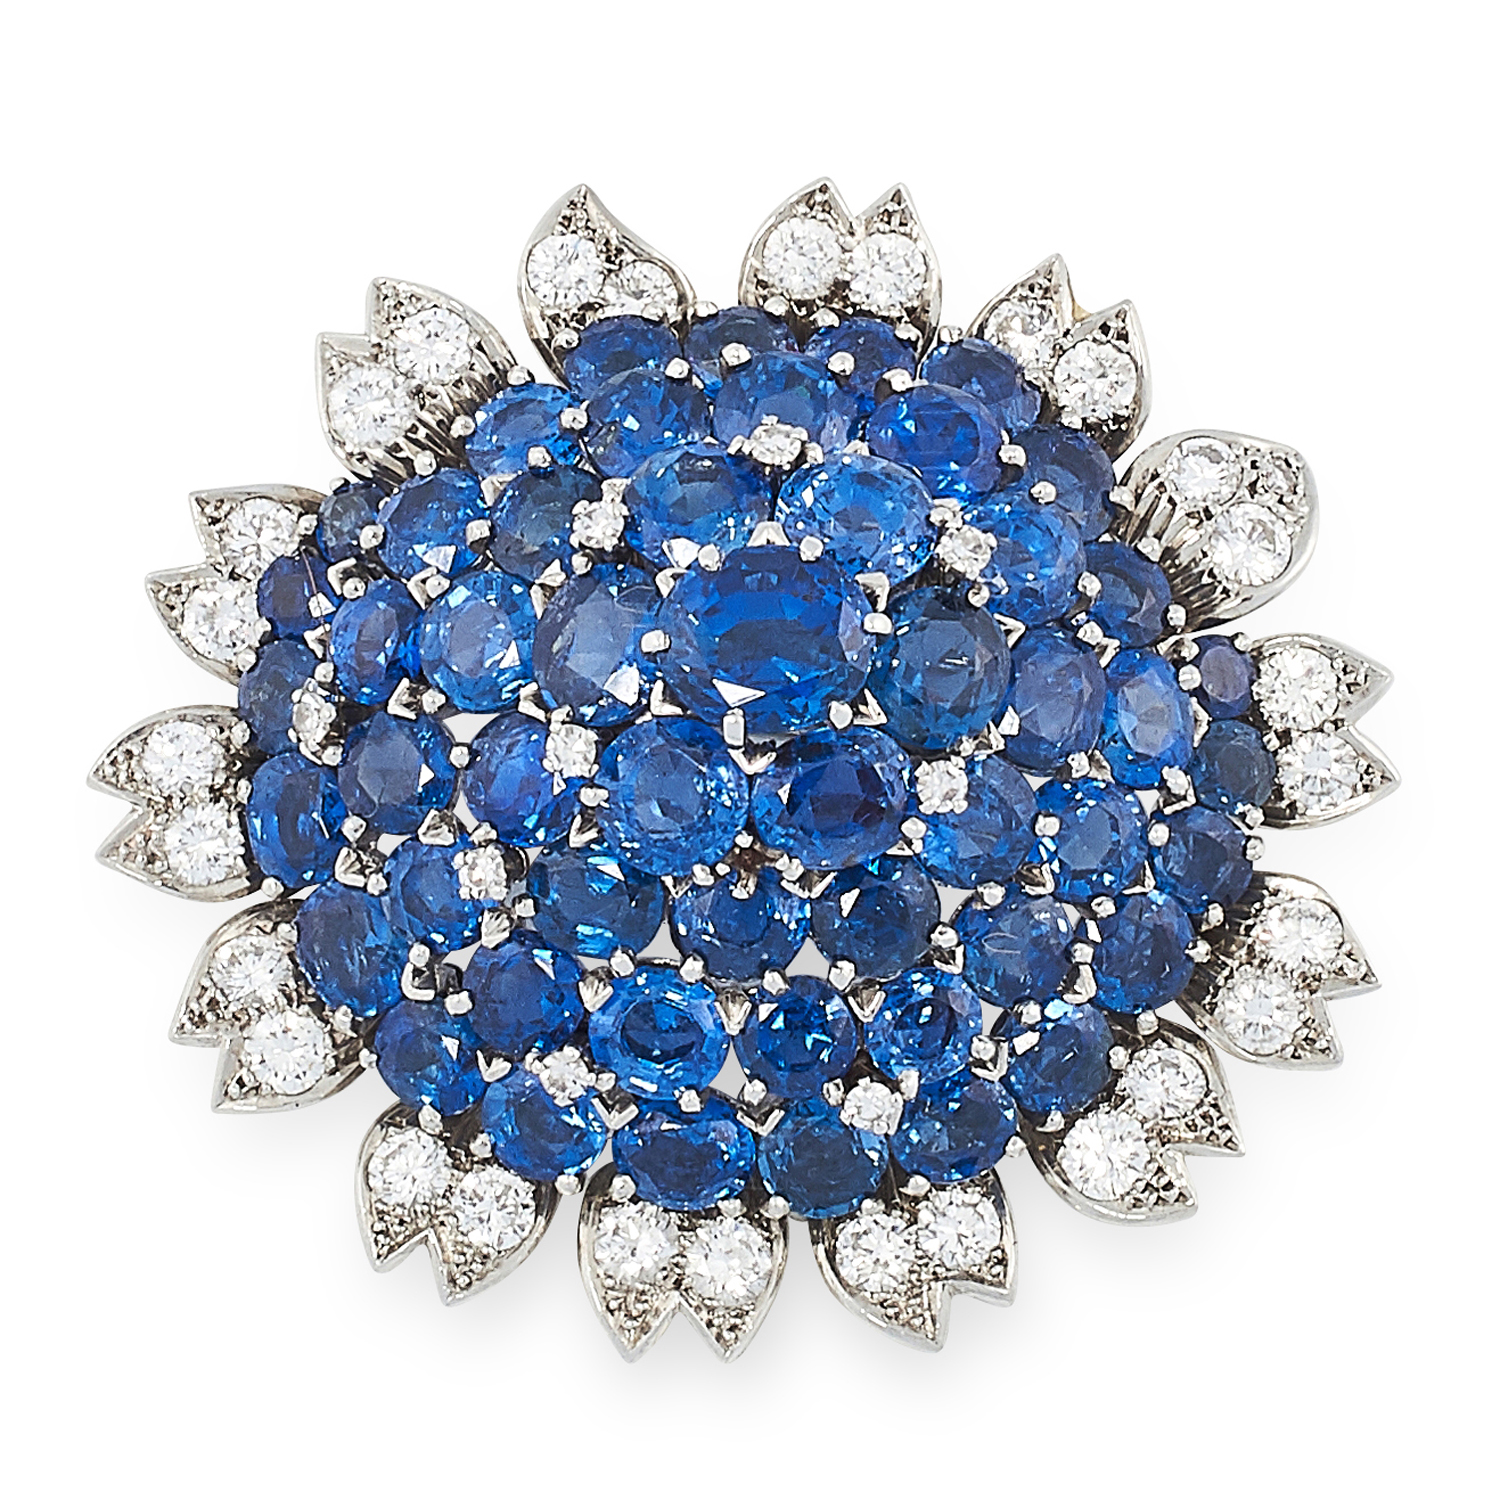 A VINTAGE SAPPHIRE AND DIAMOND BROOCH, CARTIER CIRCA 1960 in 18ct white gold, set with a cluster